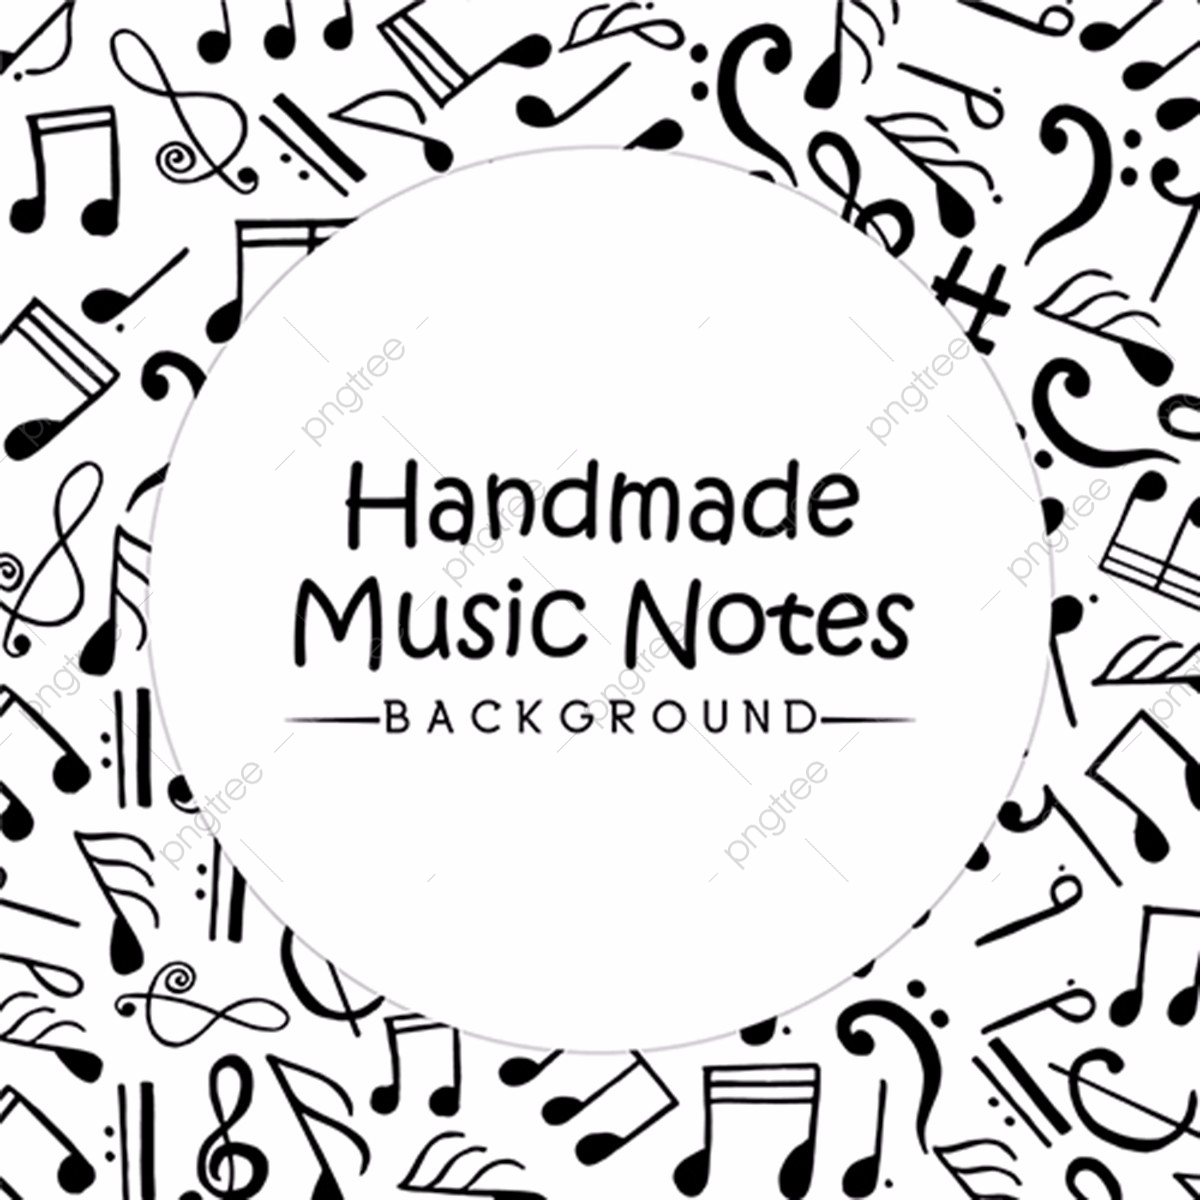 Hand Drawn Music Notes Background, Hand Vector, Music